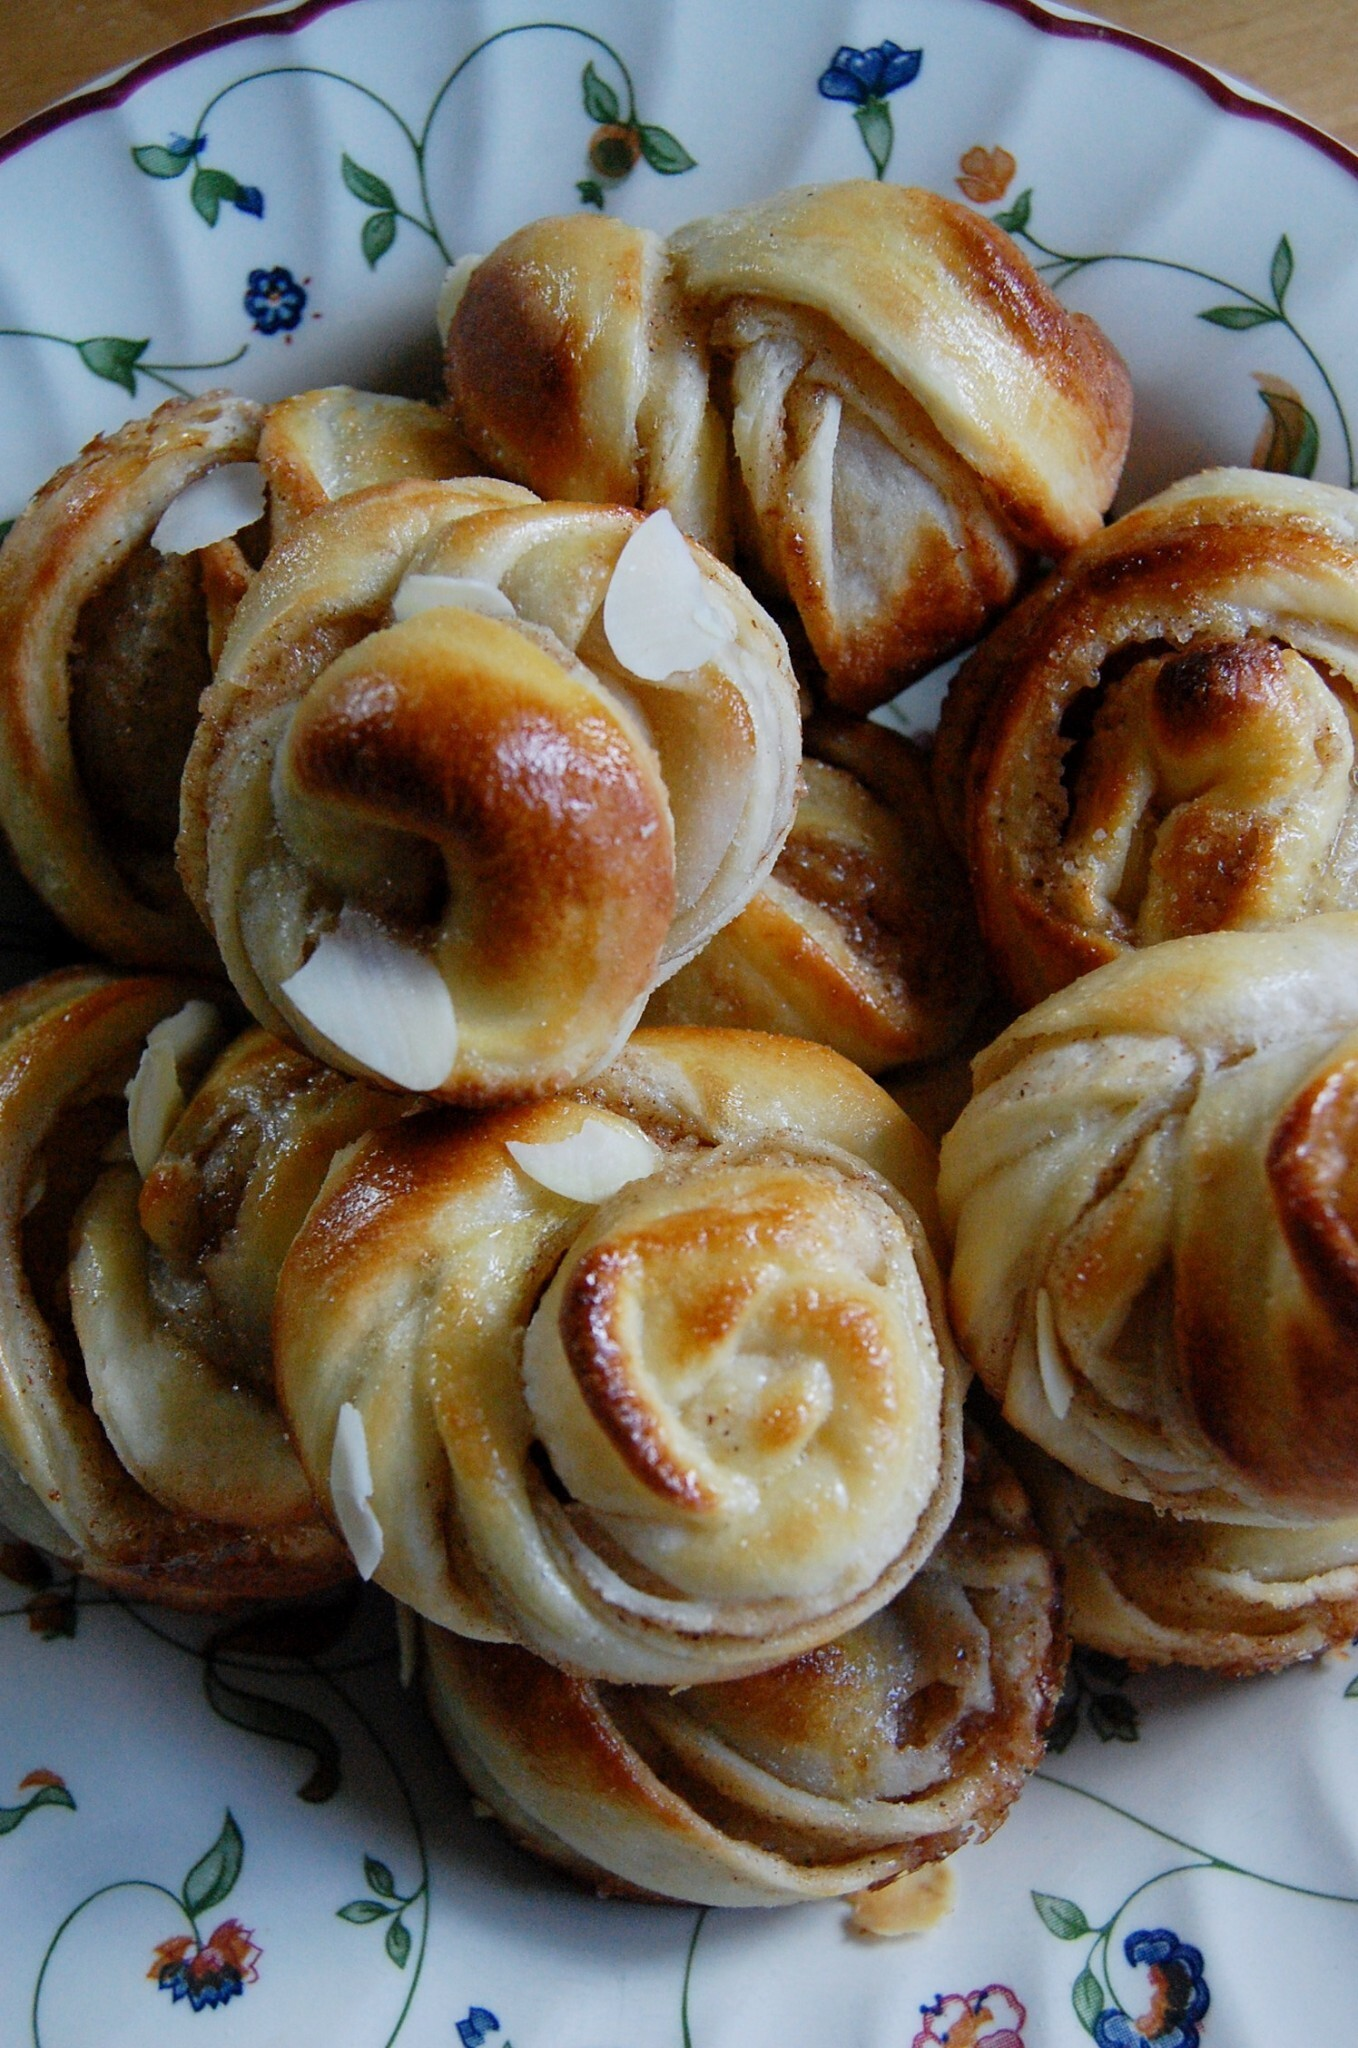 LOOKING FOR THE REAL SWEDISH CINNAMON BUNS?